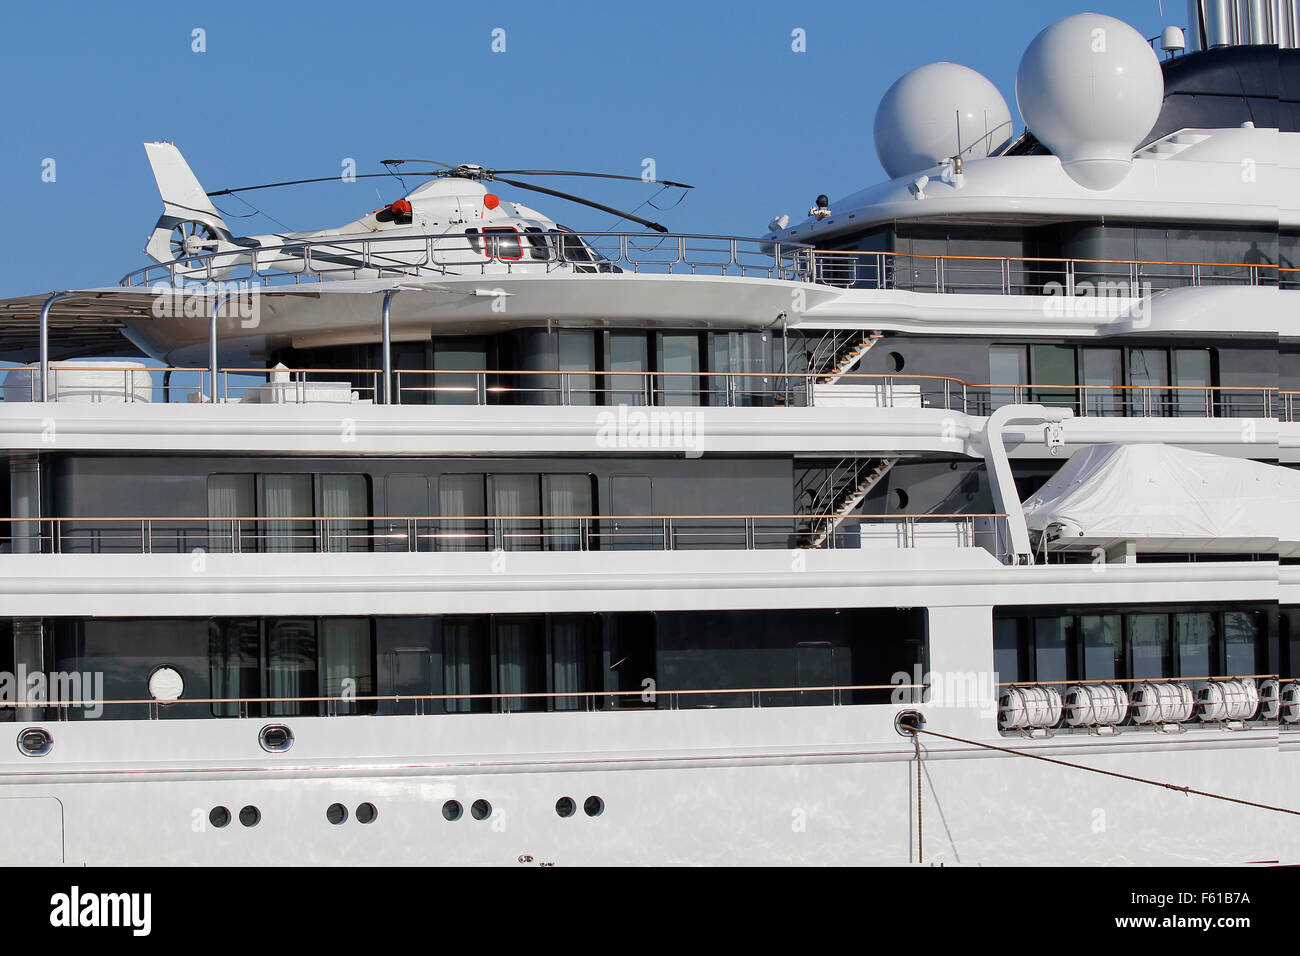 Helicopter in a luxury white yacht - Stock Image